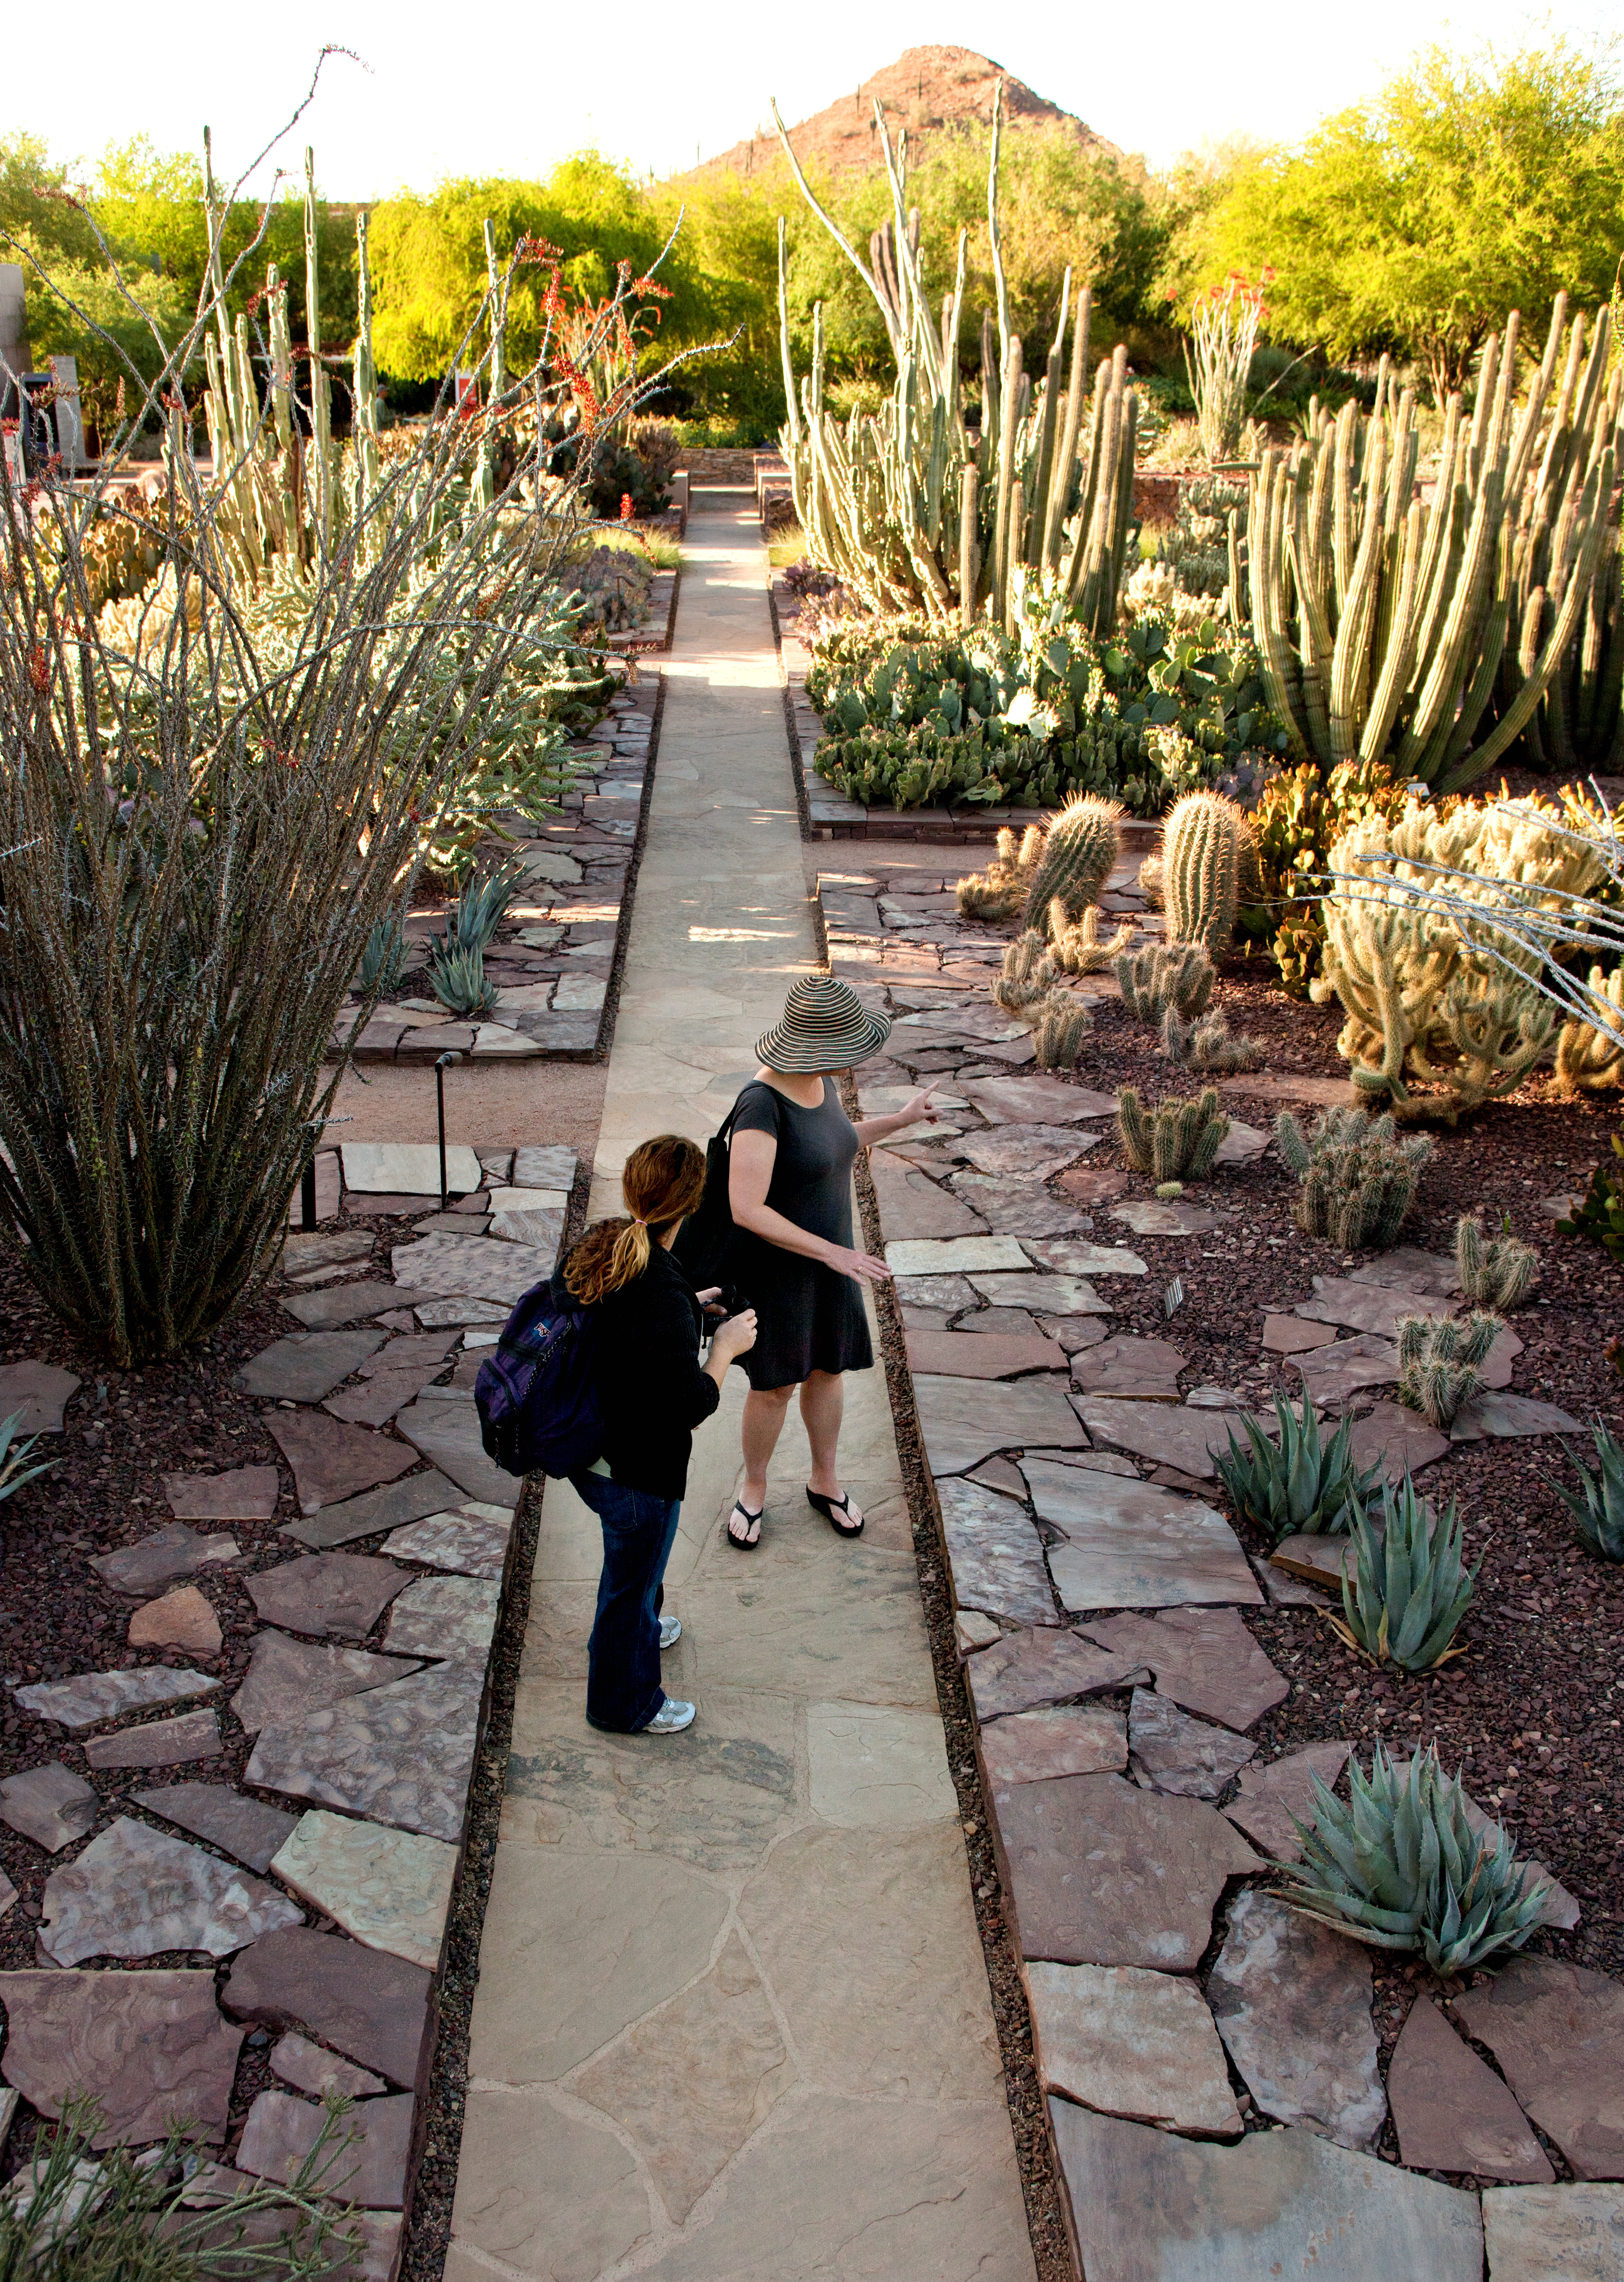 download hi res image - Desert Botanical Garden Phoenix